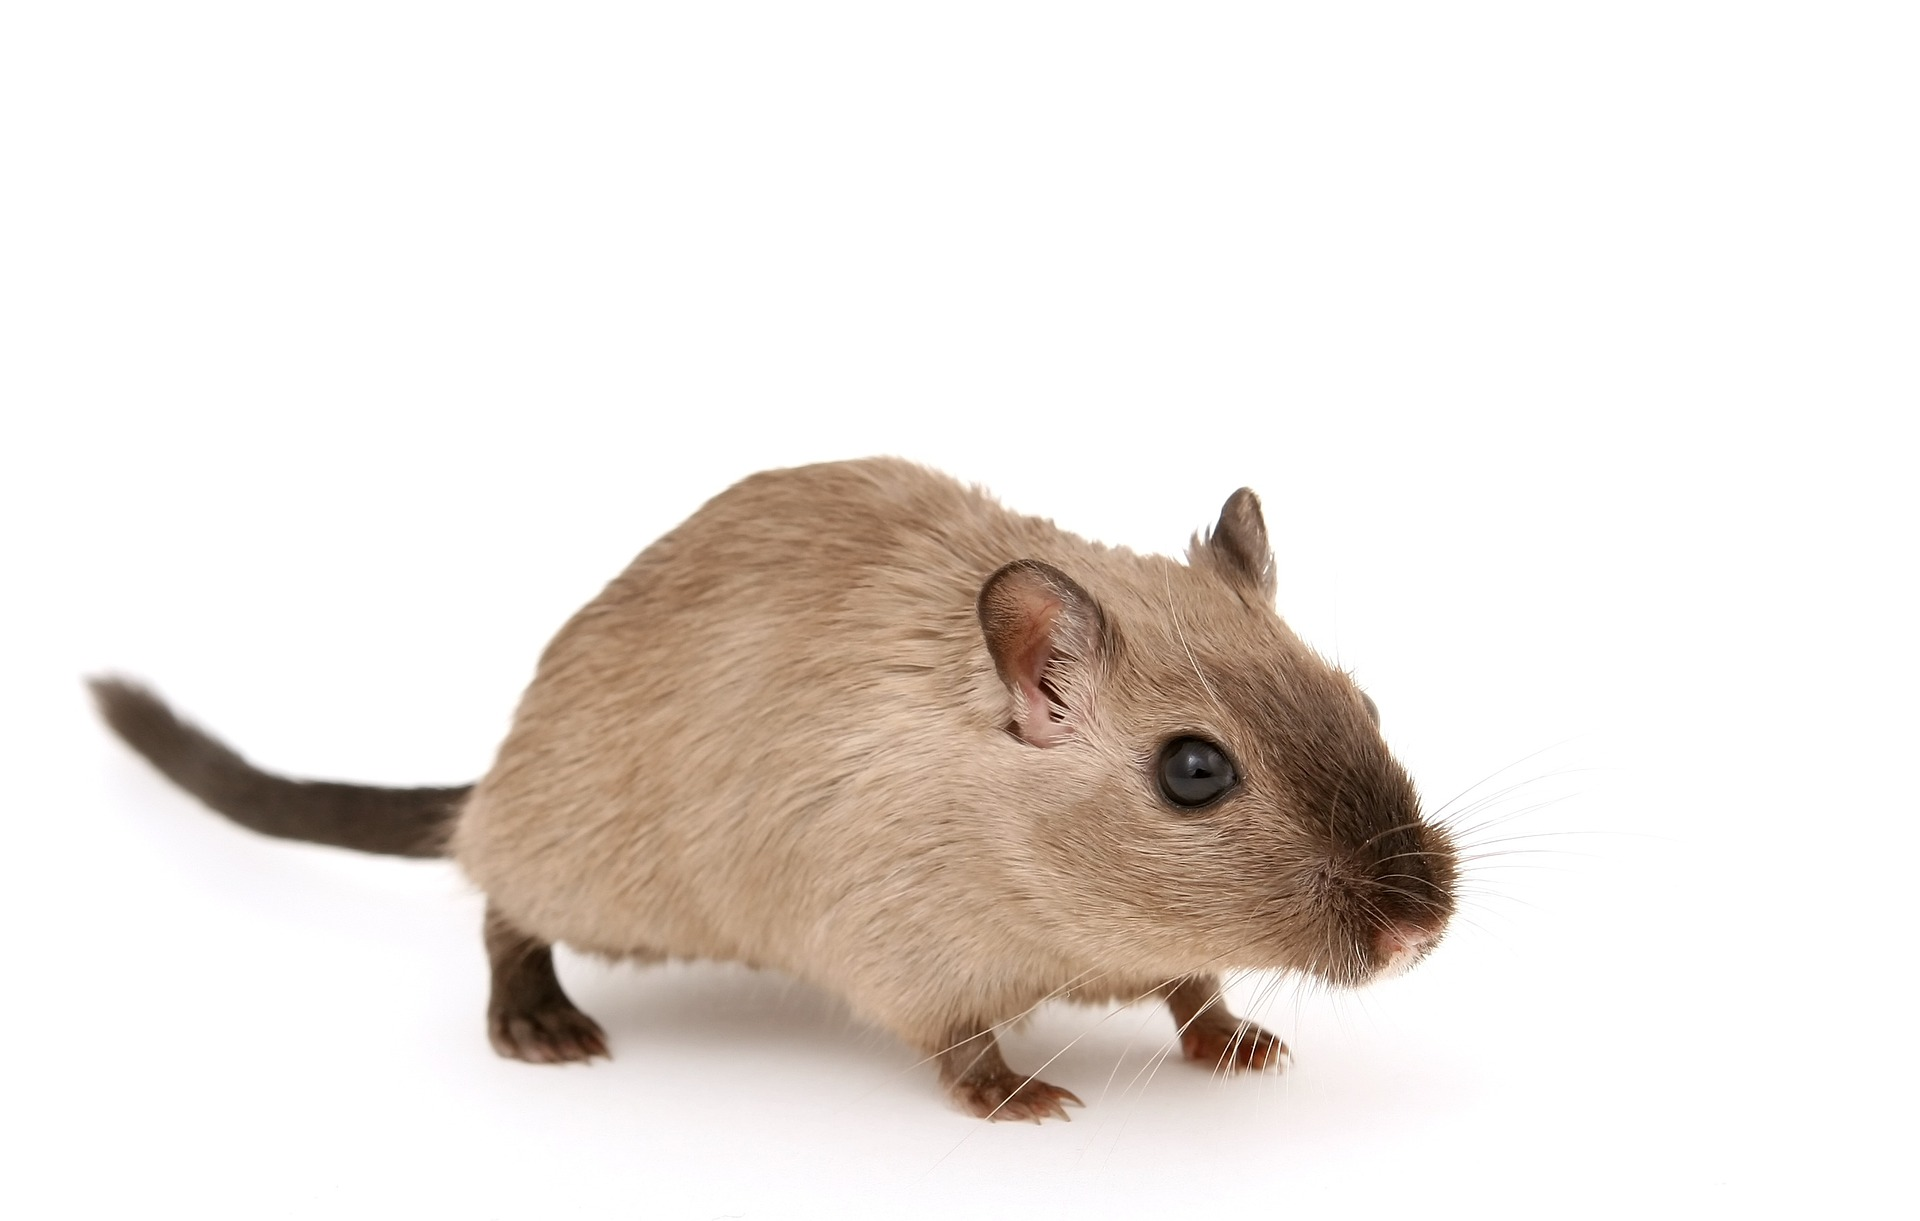 Rodents, mice, rats, rodent removal New Orleans, Nola rodent exterminator, Pest Control, Dial One Franklynn Pest Control